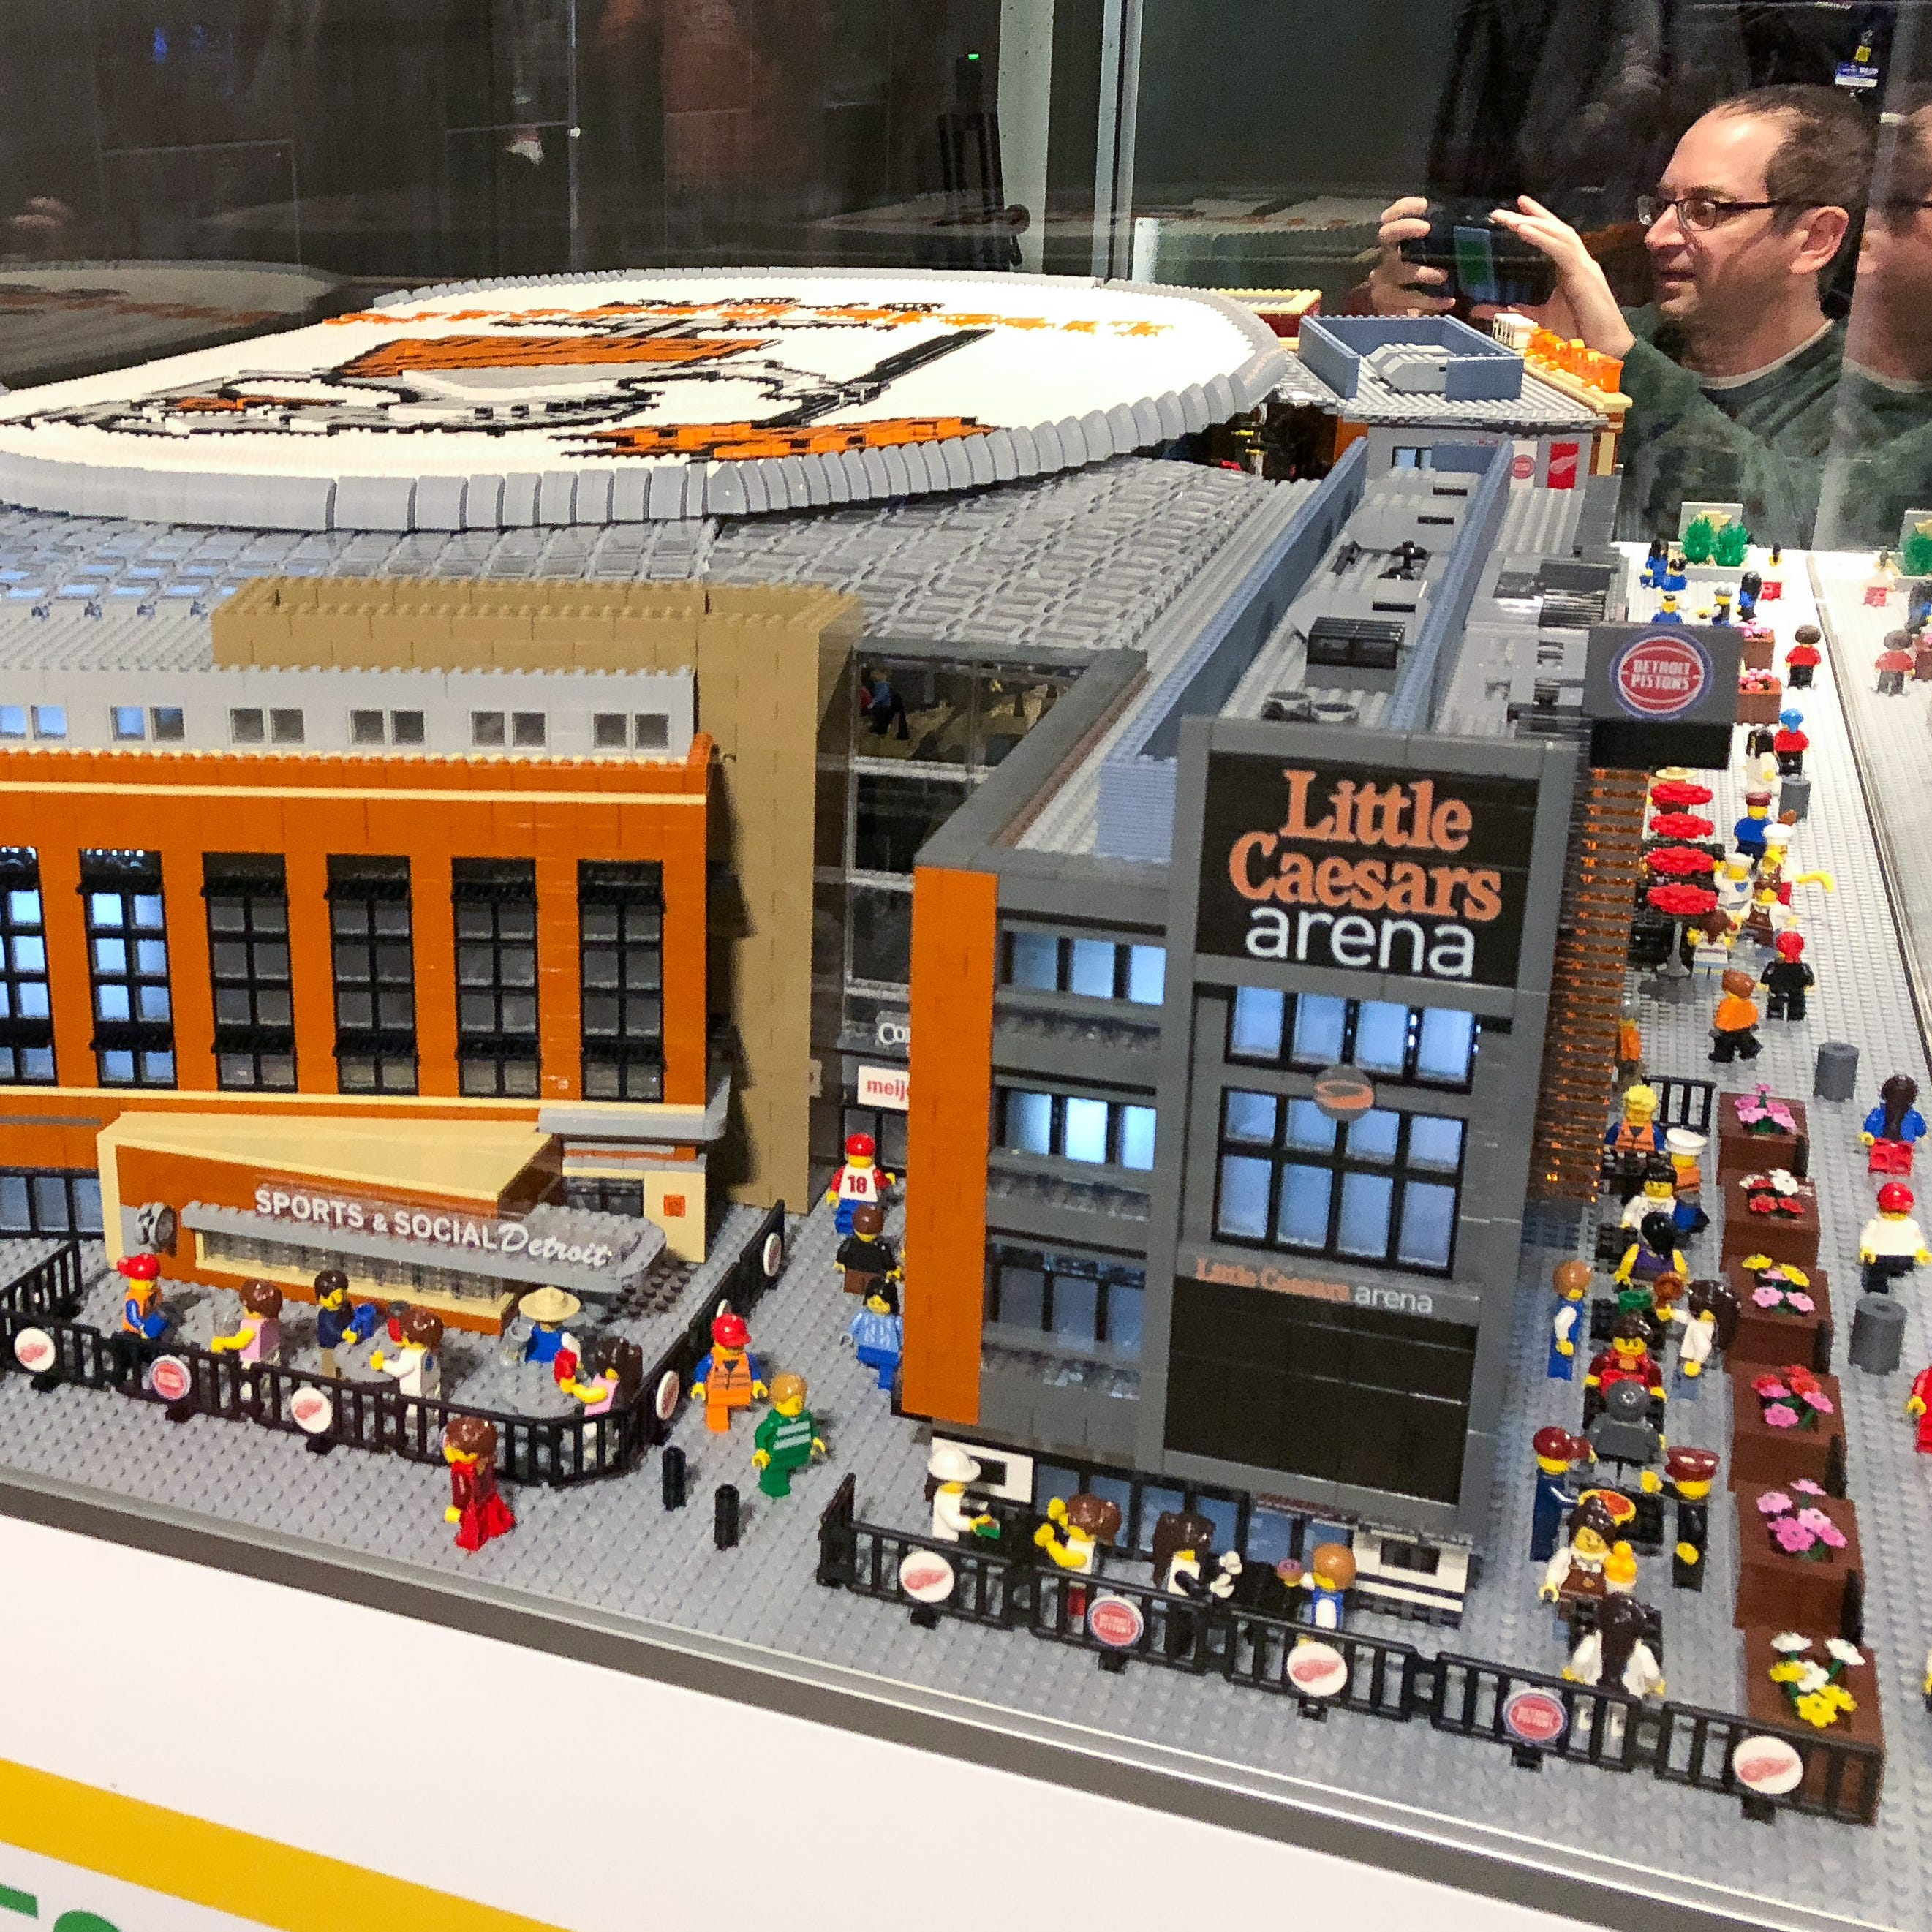 LEGO Little Caesars Arena unveiled at Monday's game